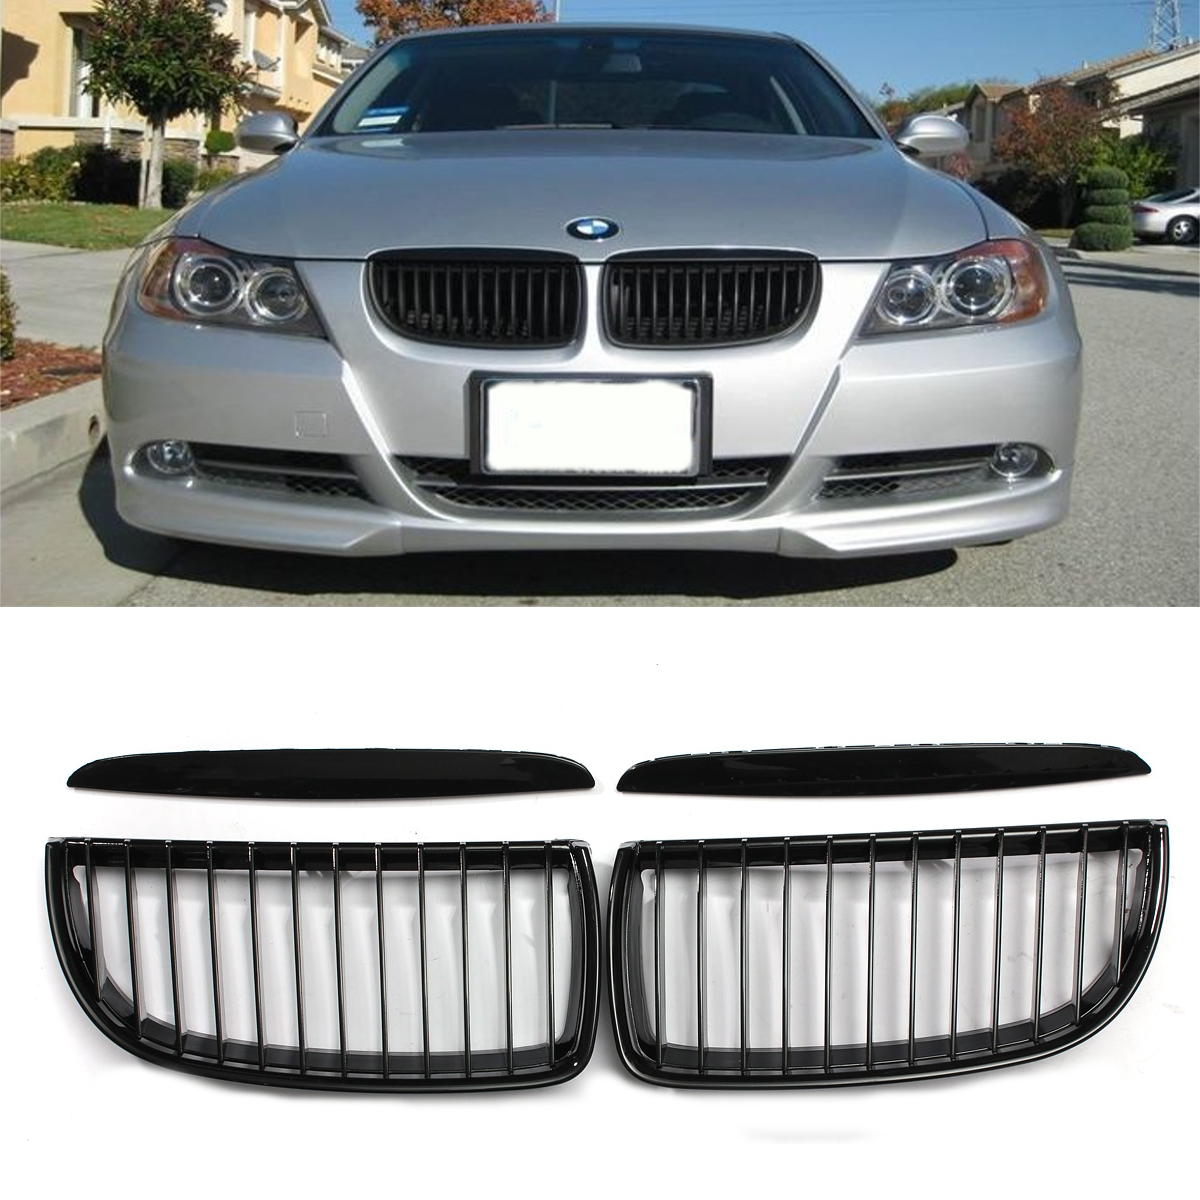 Bmw Grills: Gloss Black Front Kidney Grille Grill For BMW E90 320i